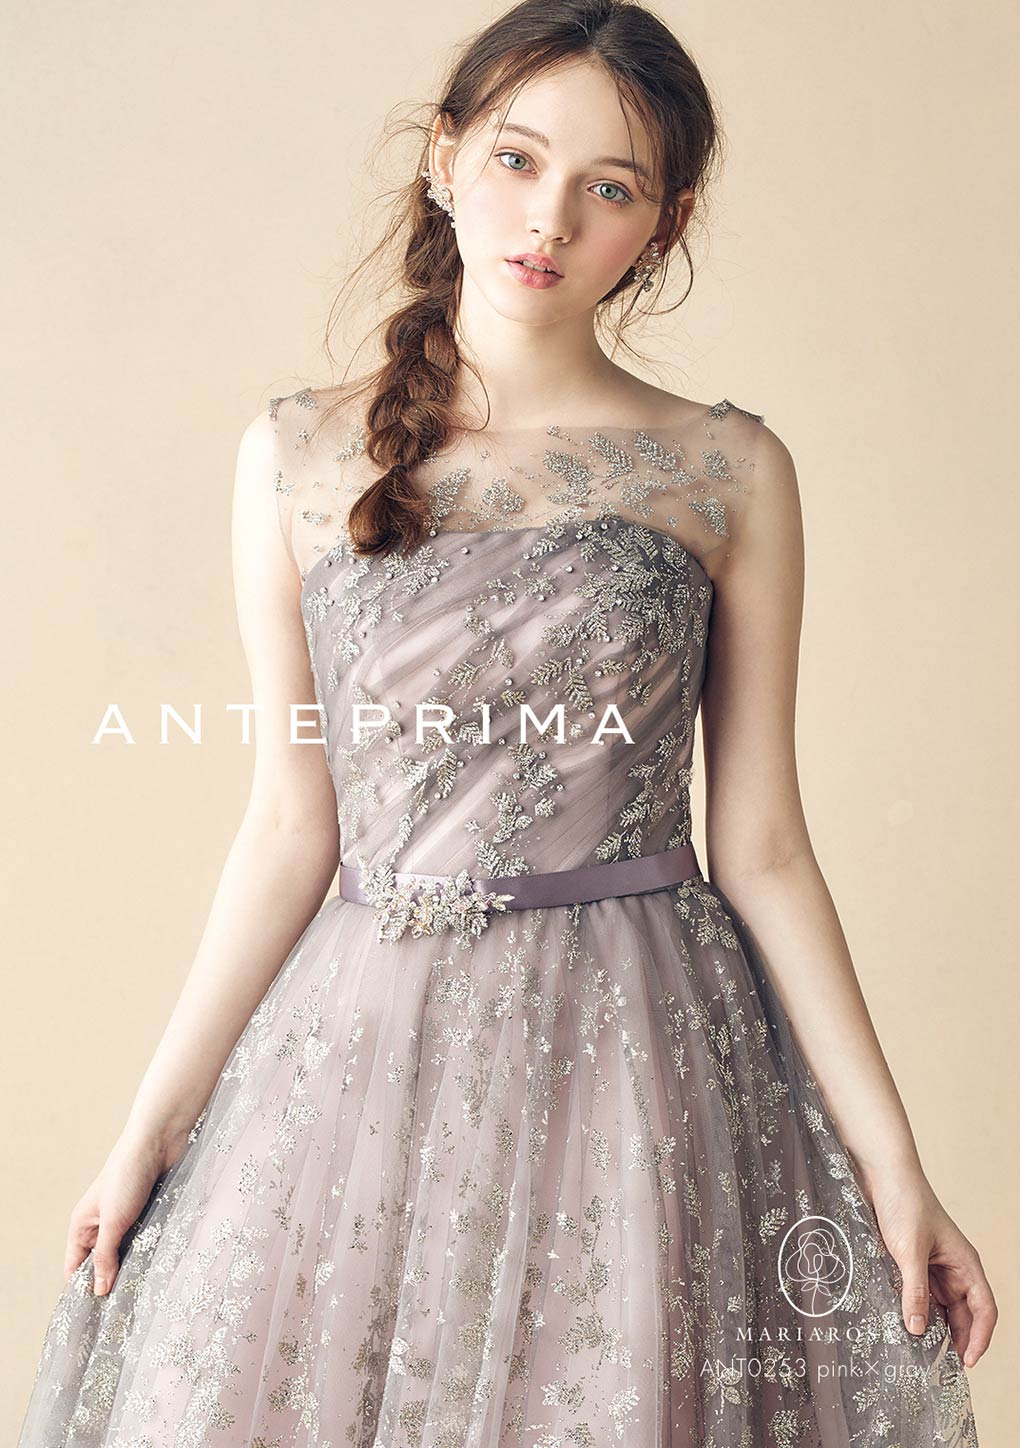 ANT0253_pink×gray